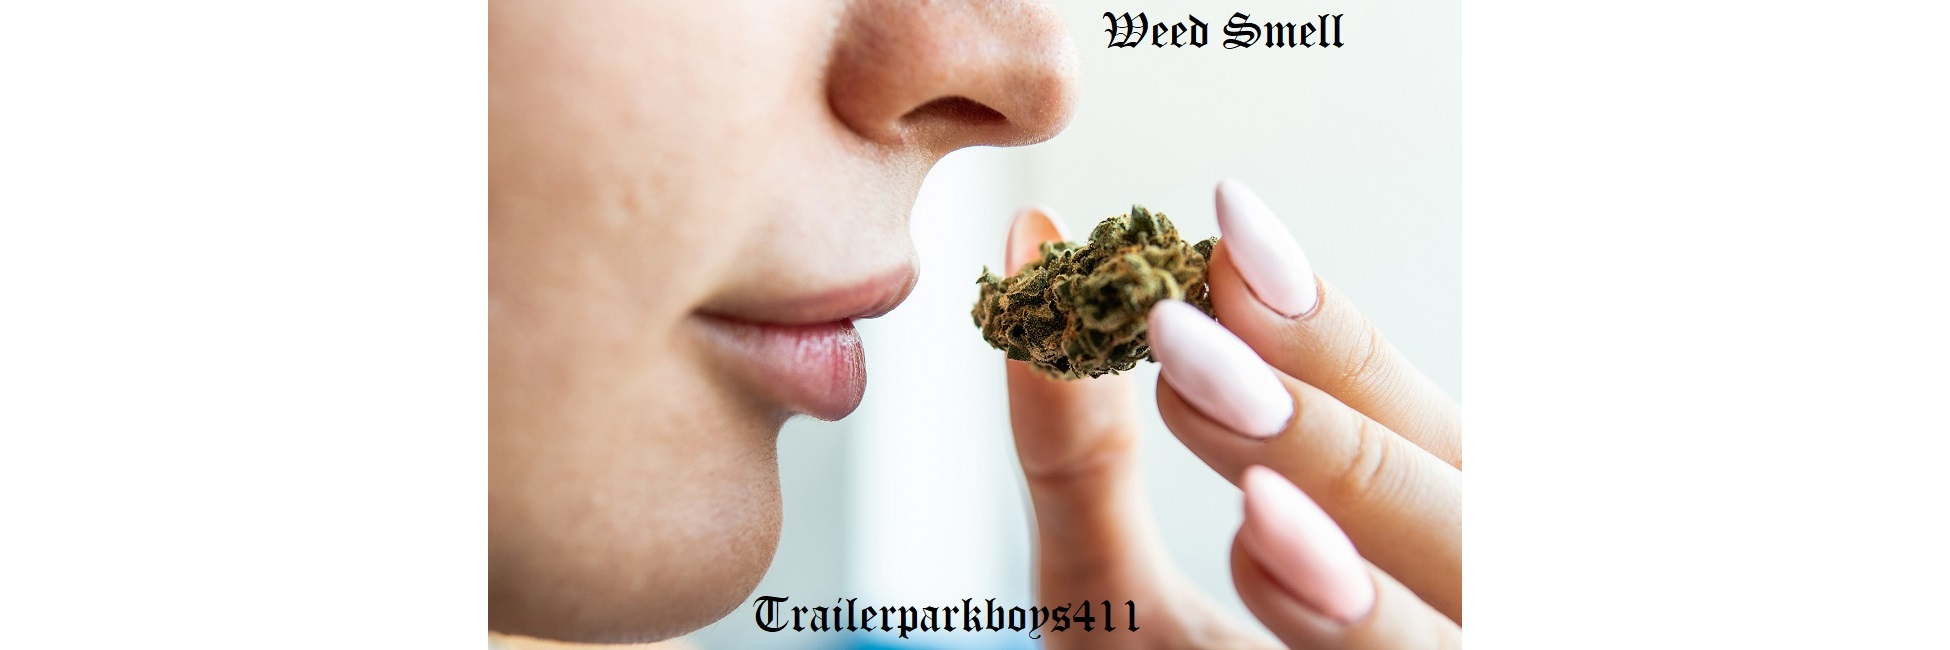 weed msell